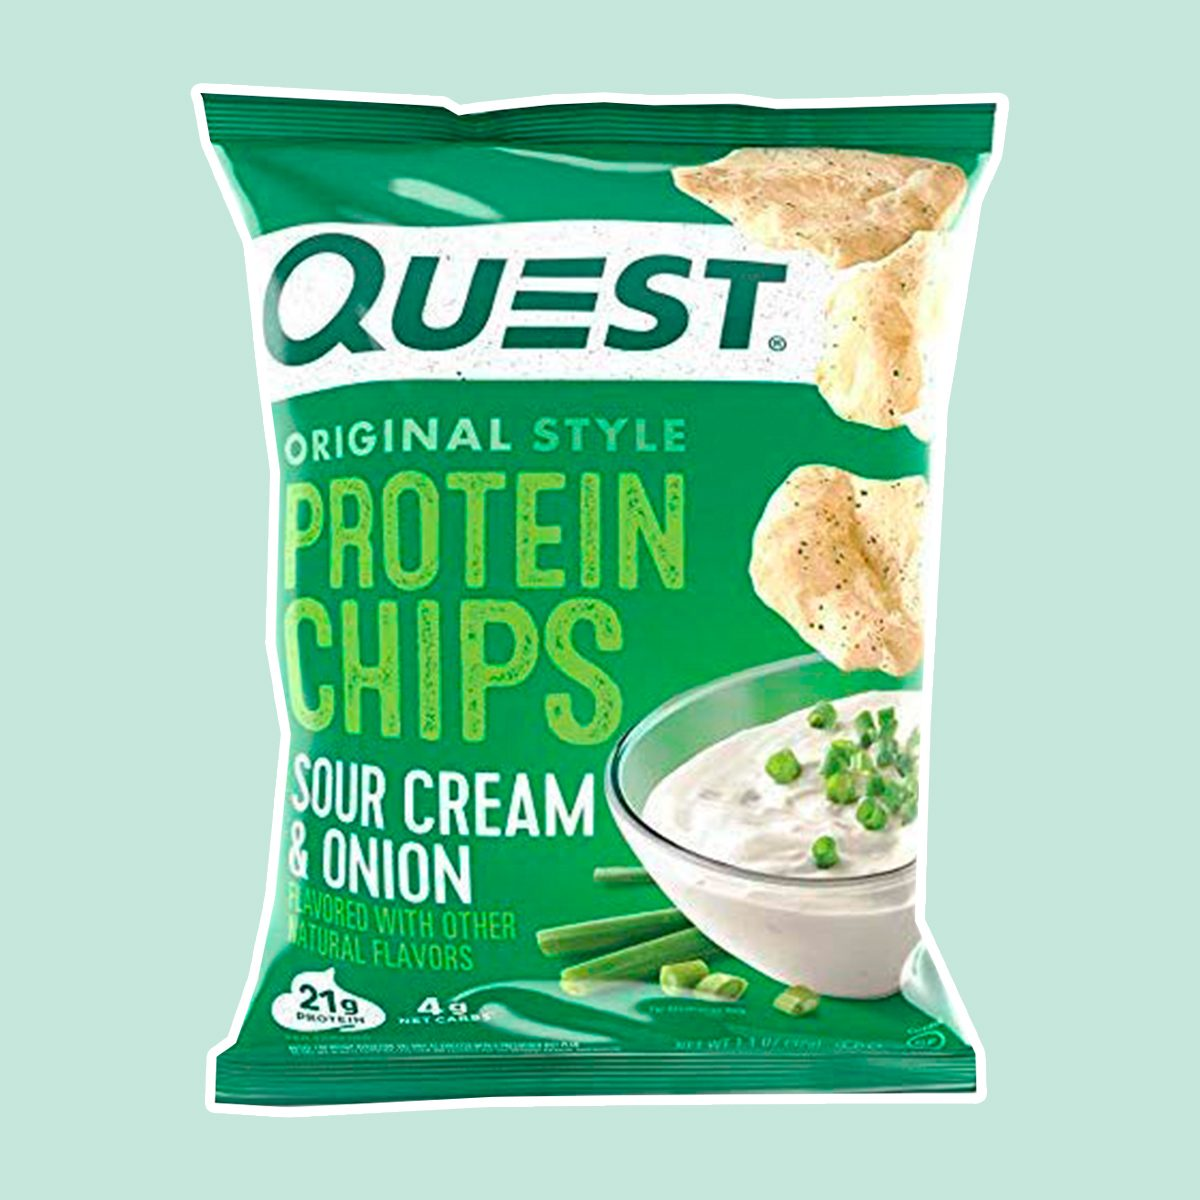 Quest Nutrition Protein Chips Ultimate Variety Pack. Tortilla and Original Style Bundle for Healthy and Savory Snack with Low Carbs and High Protein